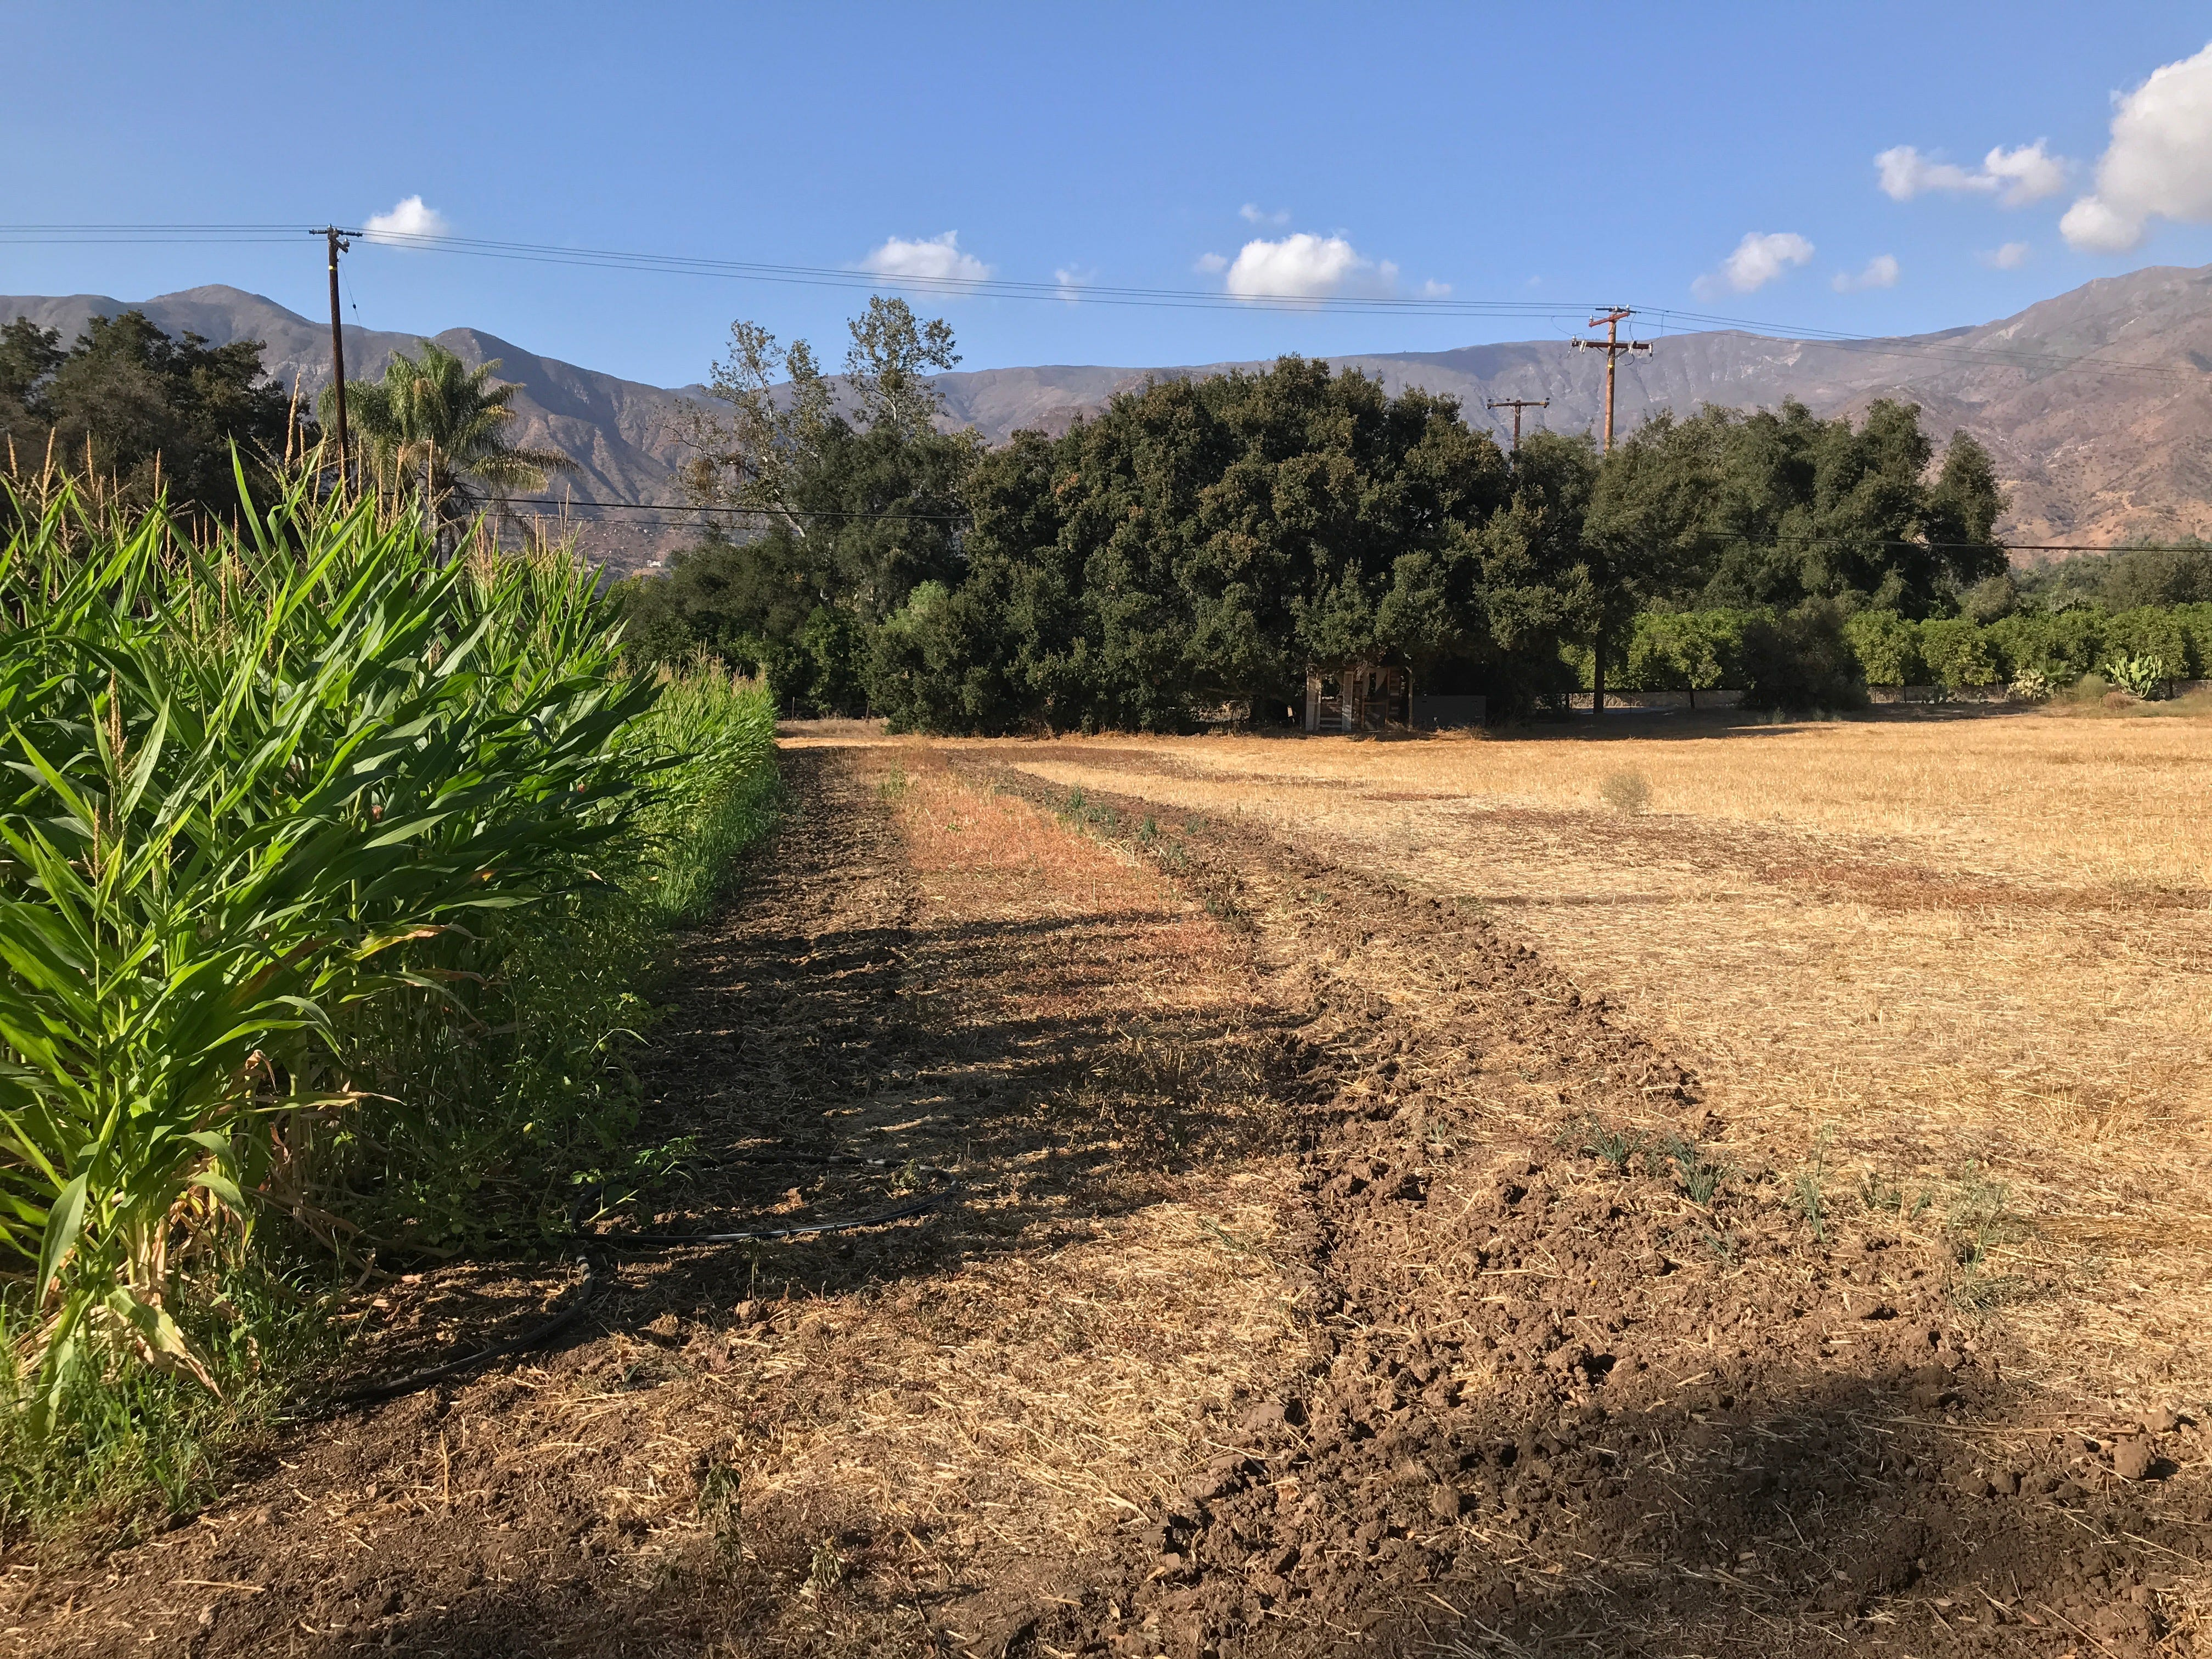 The cornfield where Boccali's Pizza & Pasta restaurant normally runs its annual haunted hayride. The ride is canceled this year because the trailers used for it burned down in the Thomas Fire. Owner DeWayne Boccali said that in addition, the drought has made it difficult to plant enough corn.